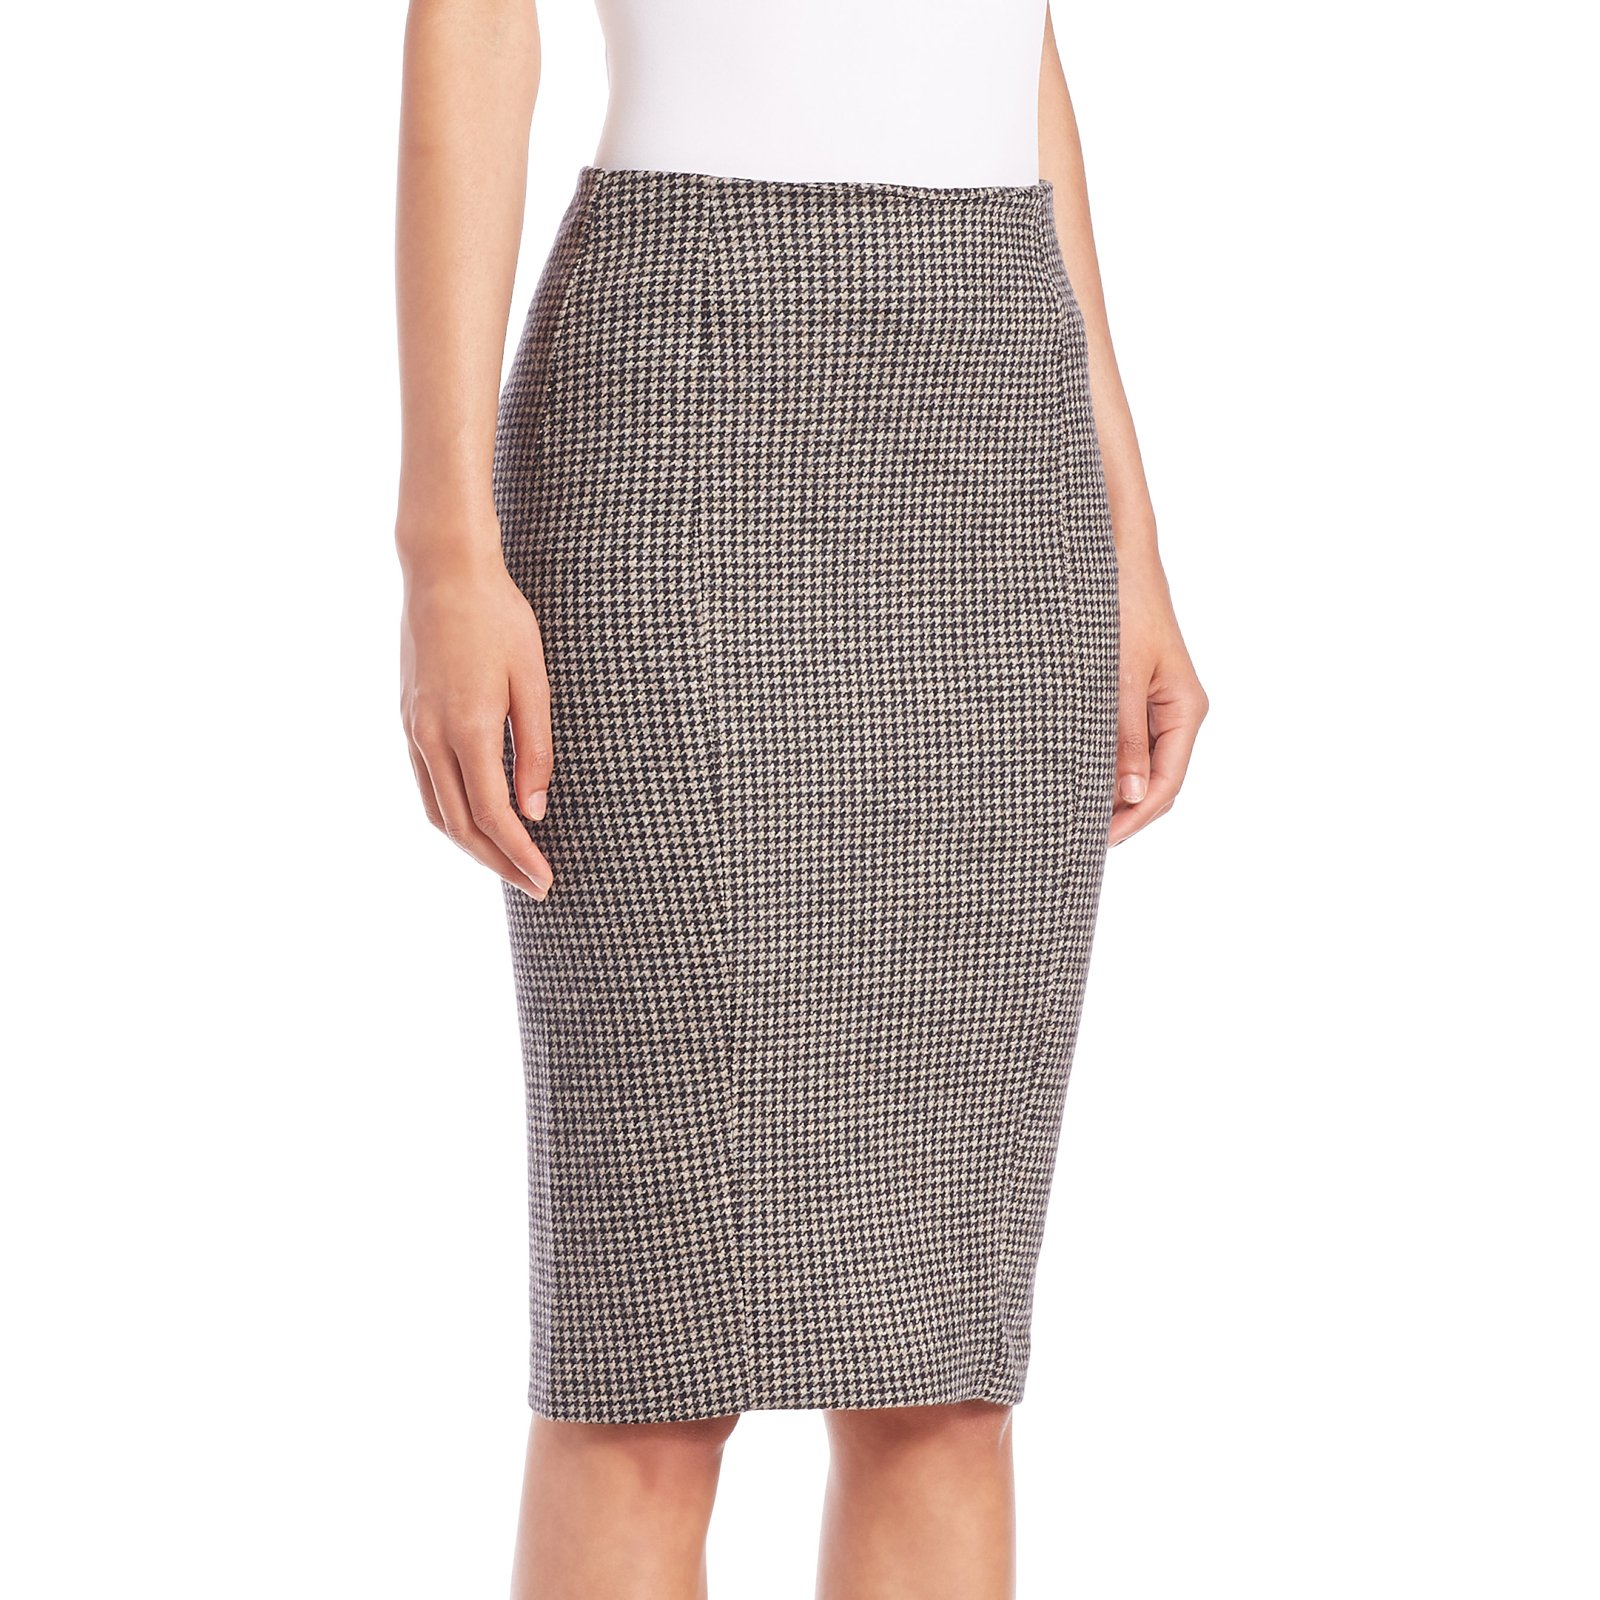 MaxMara Women's Mida Houndstooth Pencil Skirt Sz 12 Brown